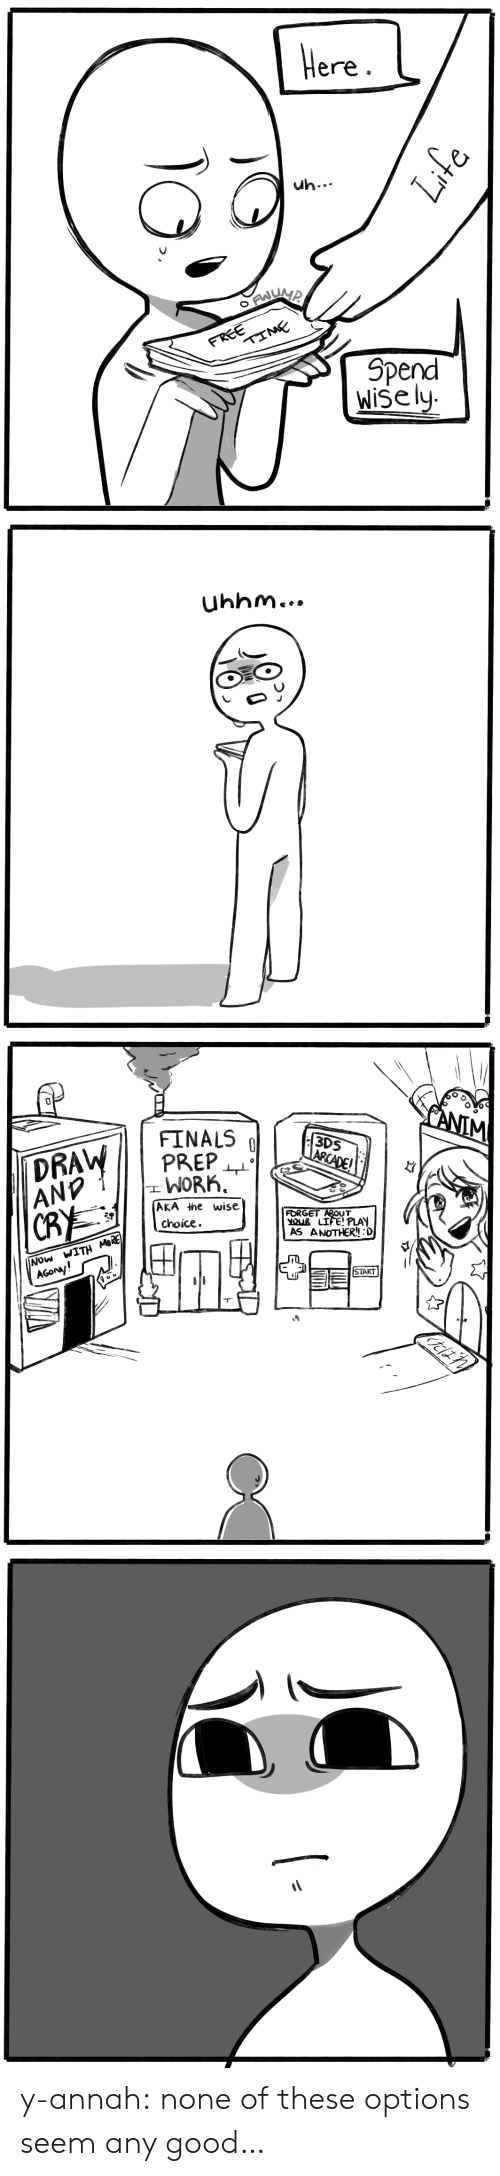 Finals, Life, and Tumblr: Here.  uh..  FREE  TIME  Spend  Wise ly   Uhhm...   FANIM  FINALS  PREP  WORK  3DS  ARCADE!  DRAW  ANP  AKA the wise  choice  FORGET ABOUT  YOUR LIFE! PLAY  AS ANOTHER!! :D  CRY  Now WITH MoRE  AGONy!  START y-annah:  none of these options seem any good…